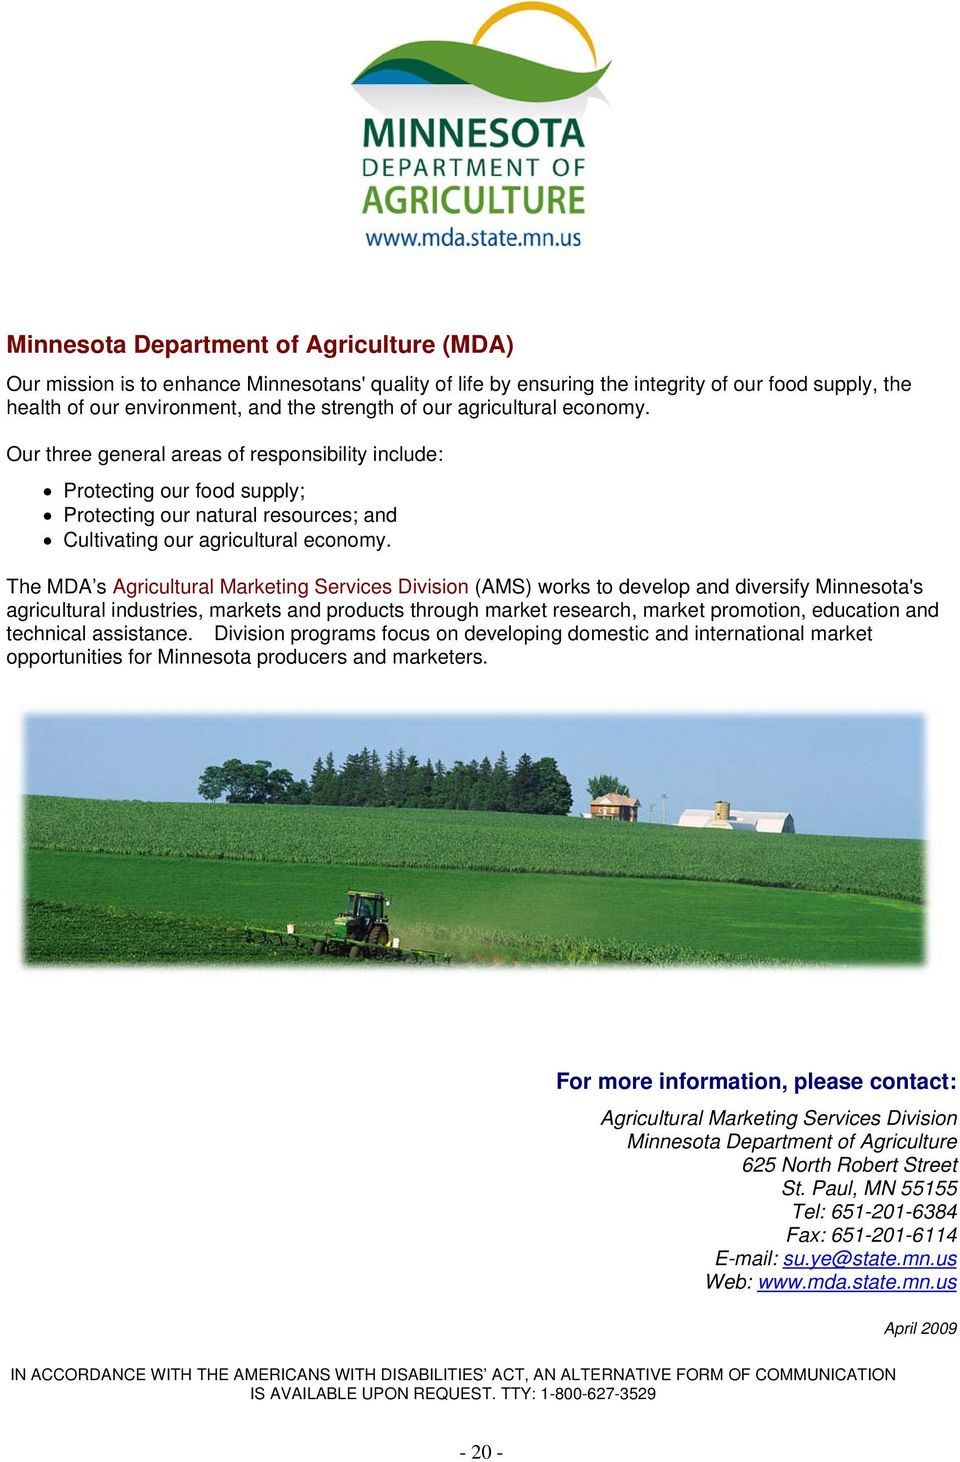 The MDA s Agricultural Marketing Services Division (AMS) works to develop and diversify Minnesota's agricultural industries, markets and products through market research, market promotion, education